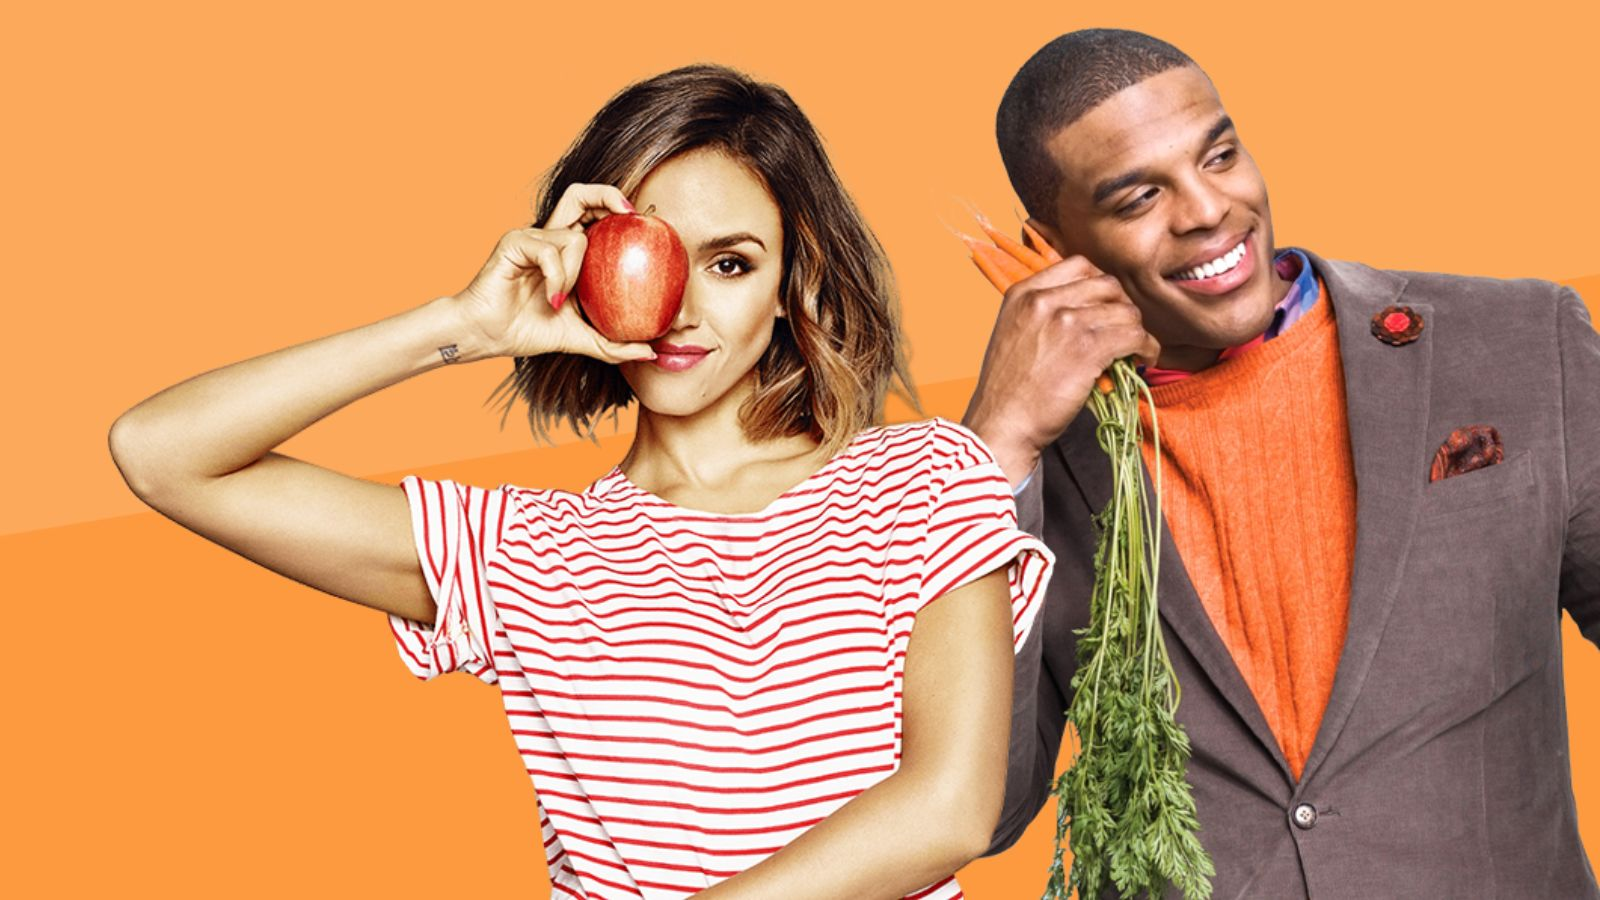 Jessica Alba and Cam Newton pose with vegetables